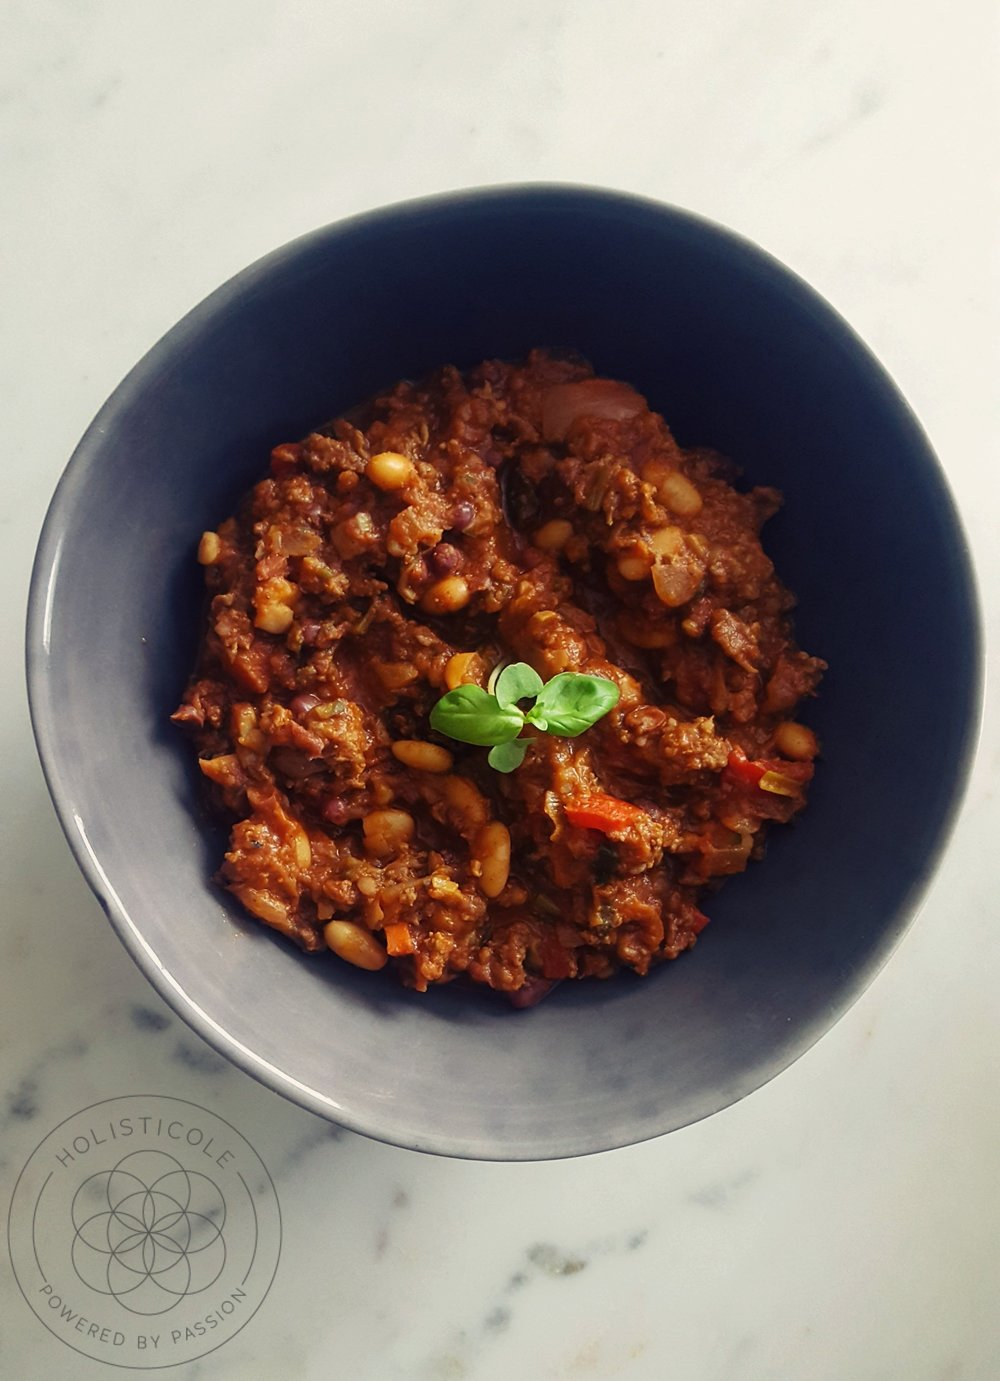 Holisticole - Grass-Fed Beef Chili